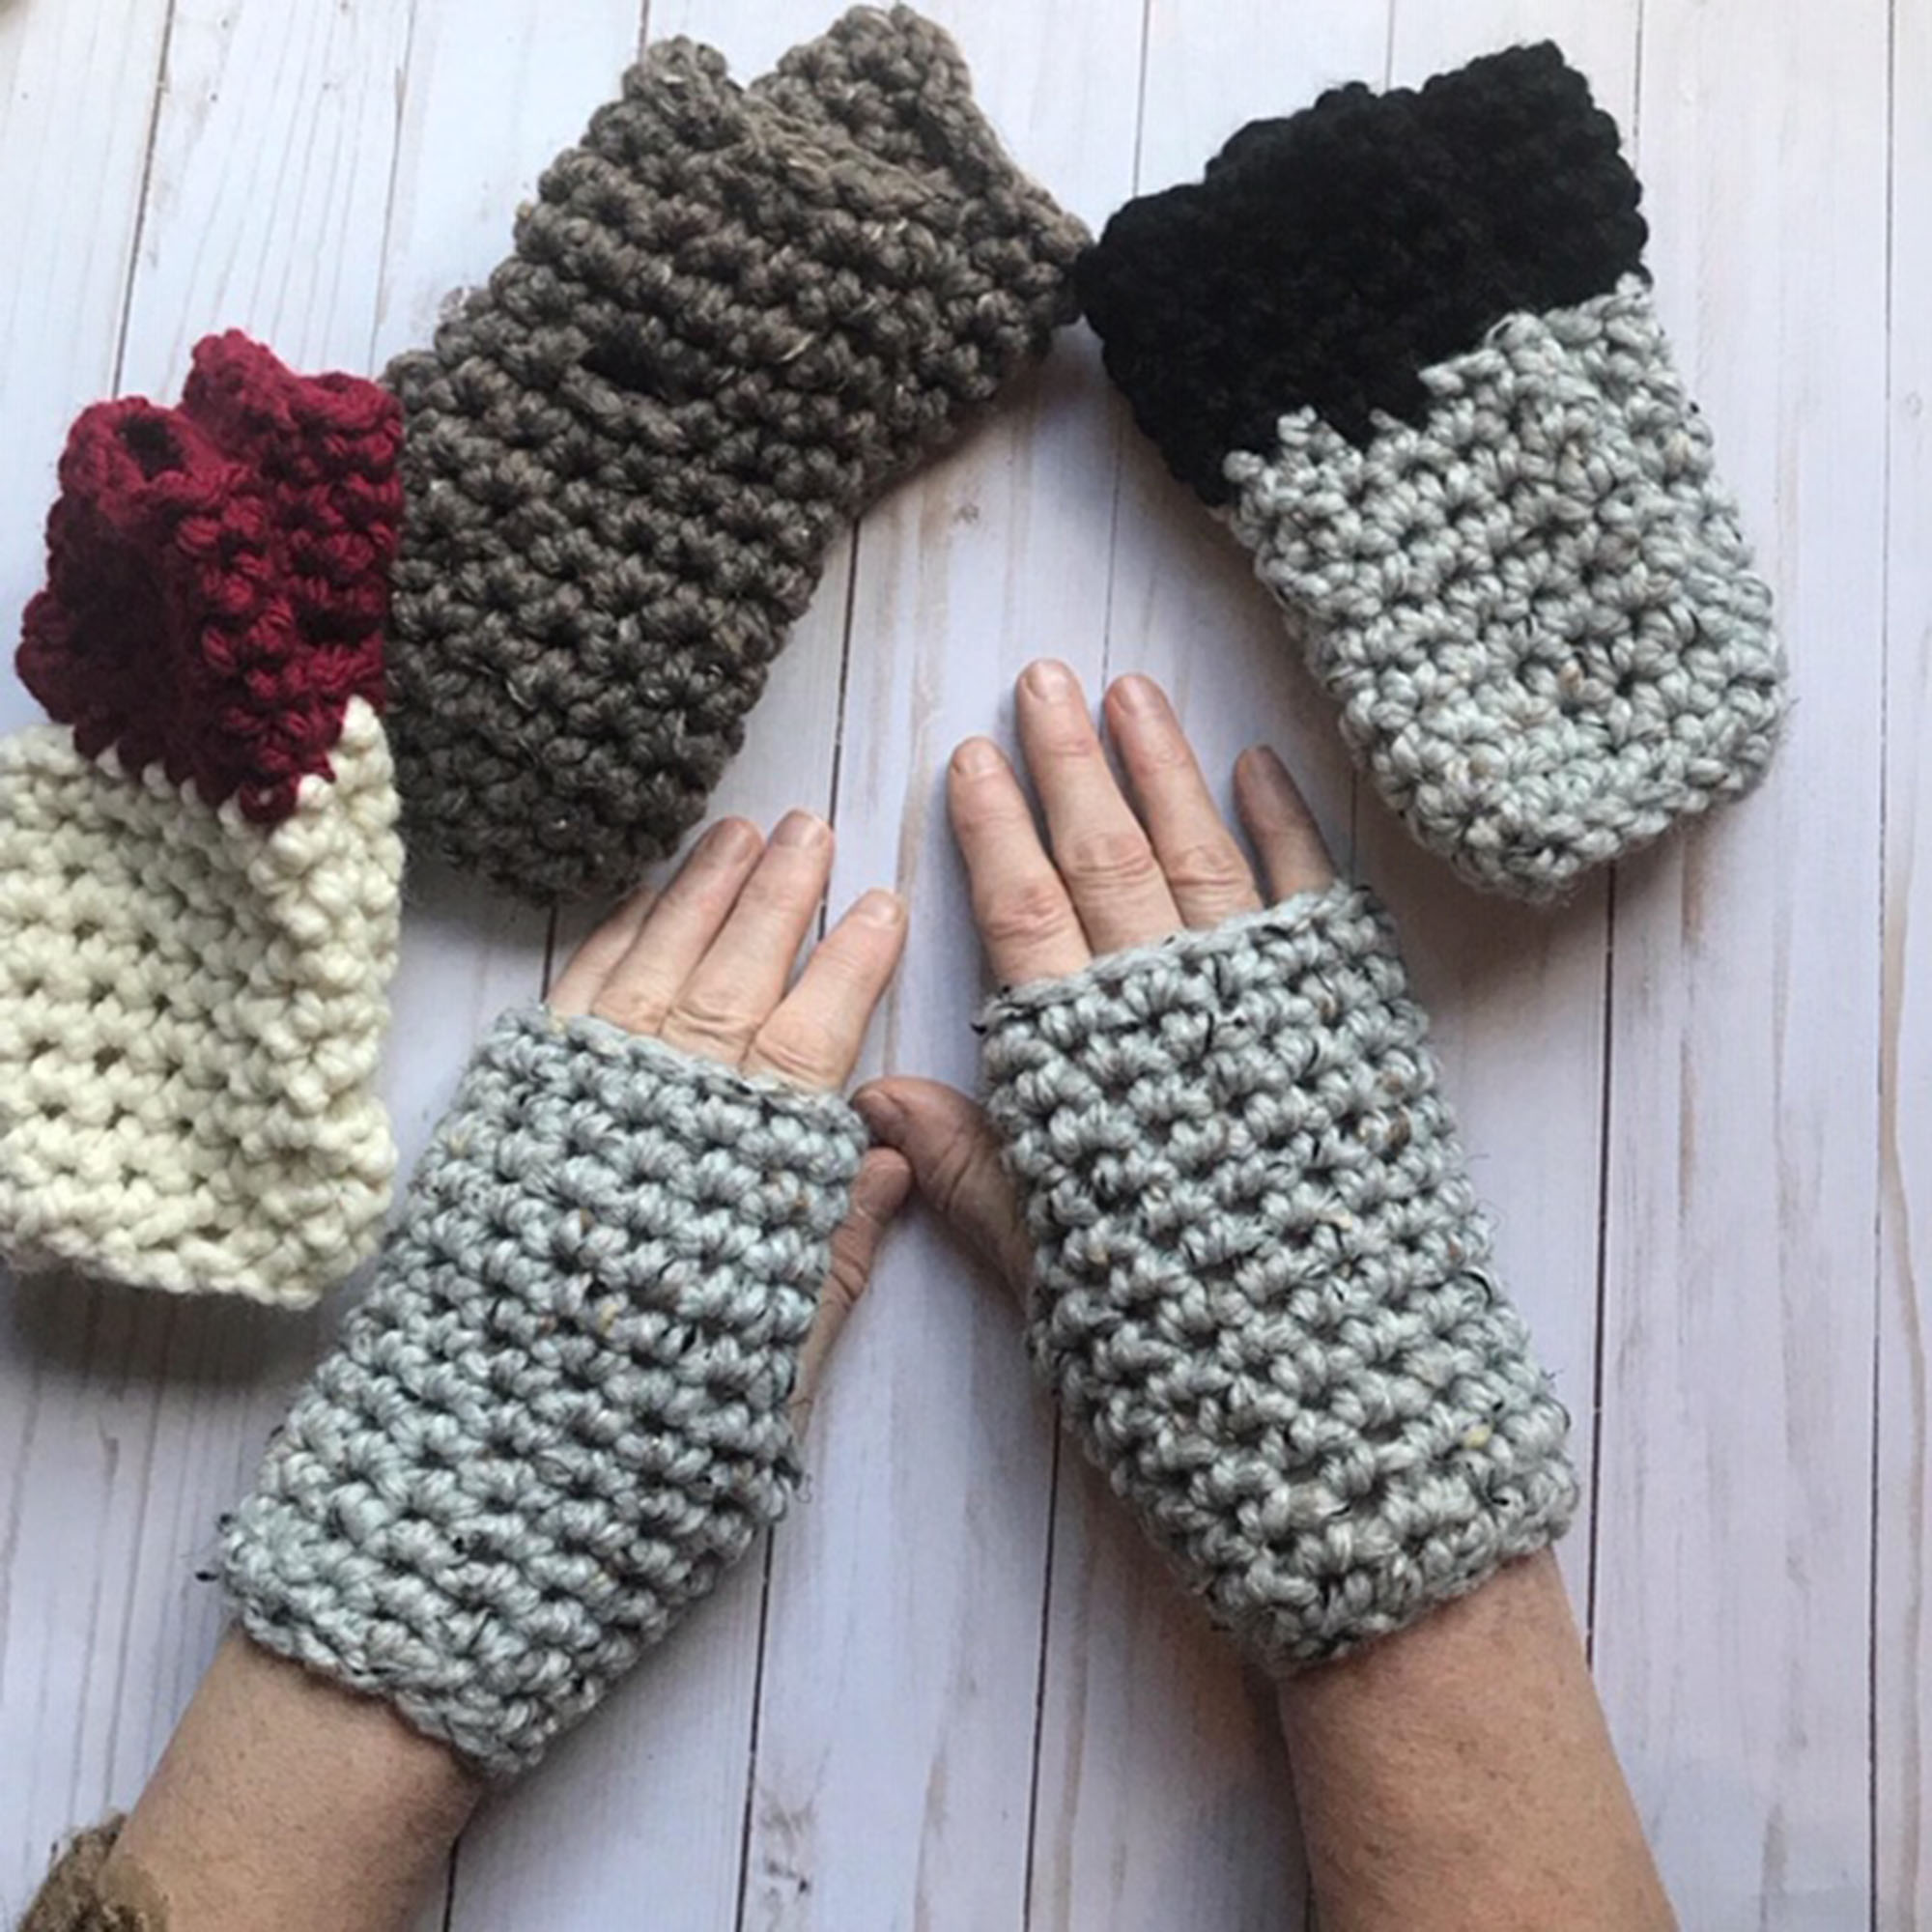 Short and Chunky Fingerless Gloves by Carroway Crochet